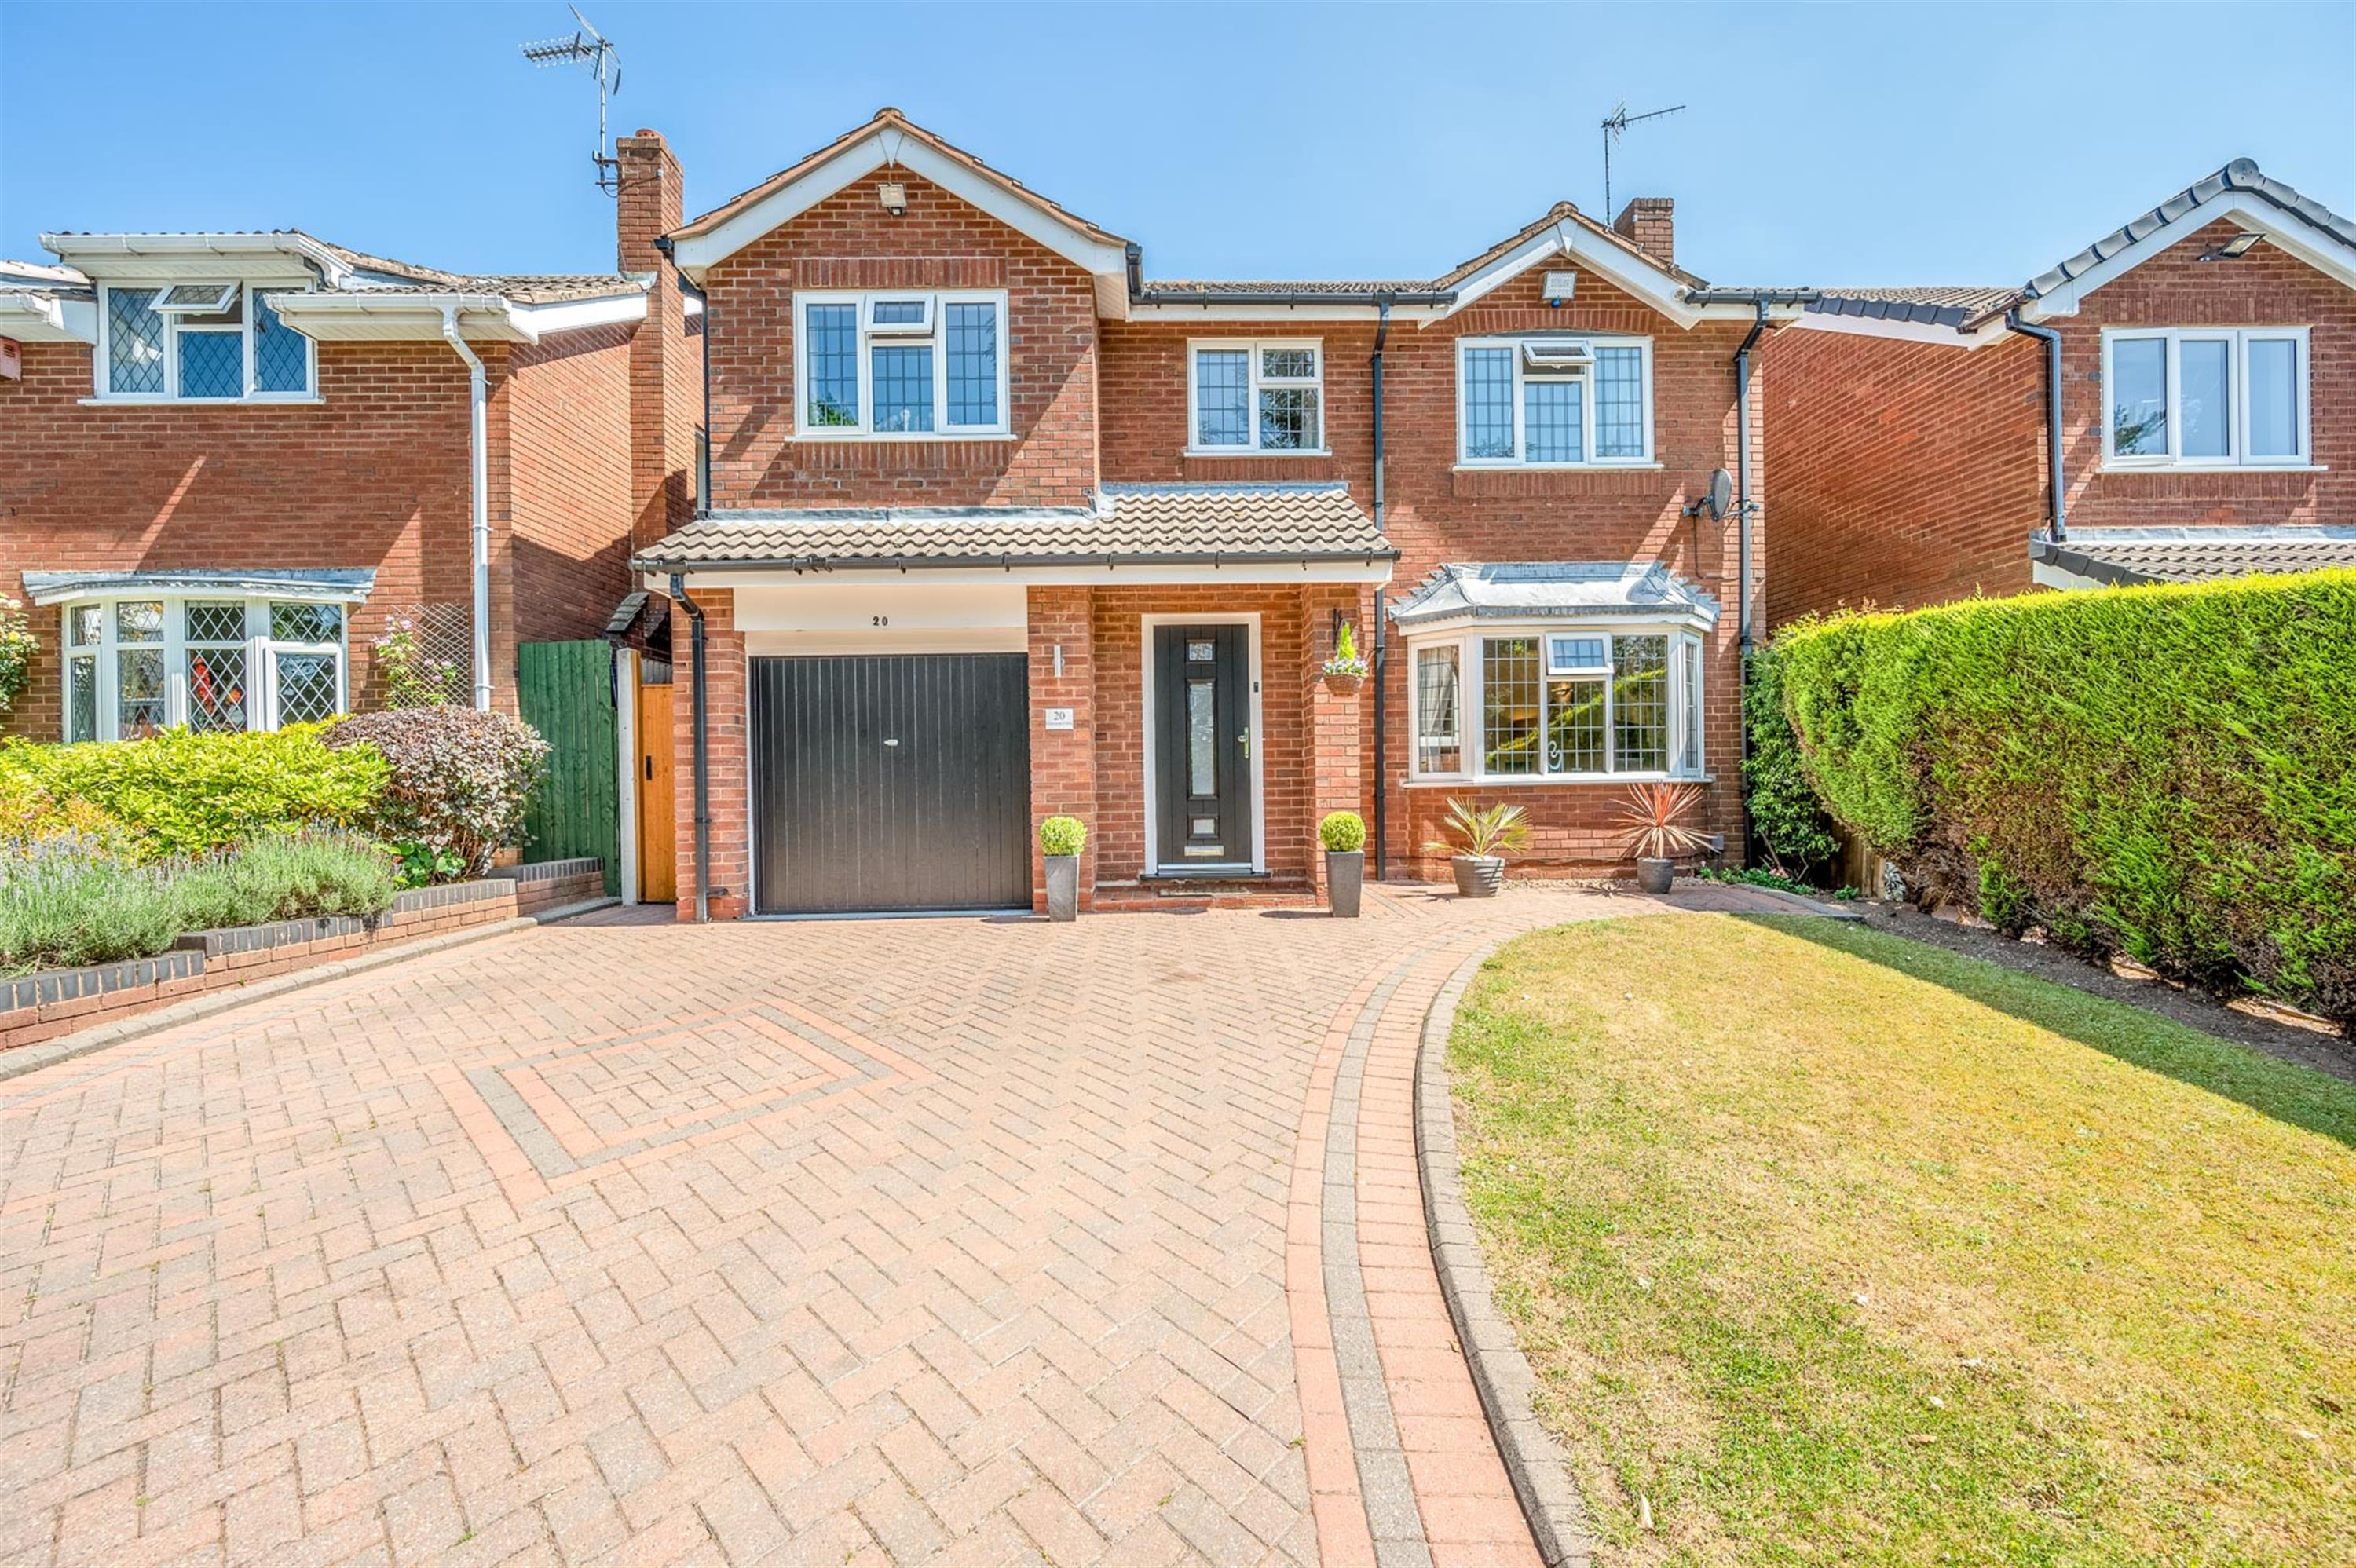 Grasmere Close, Kingswinford, DY6 9DQ